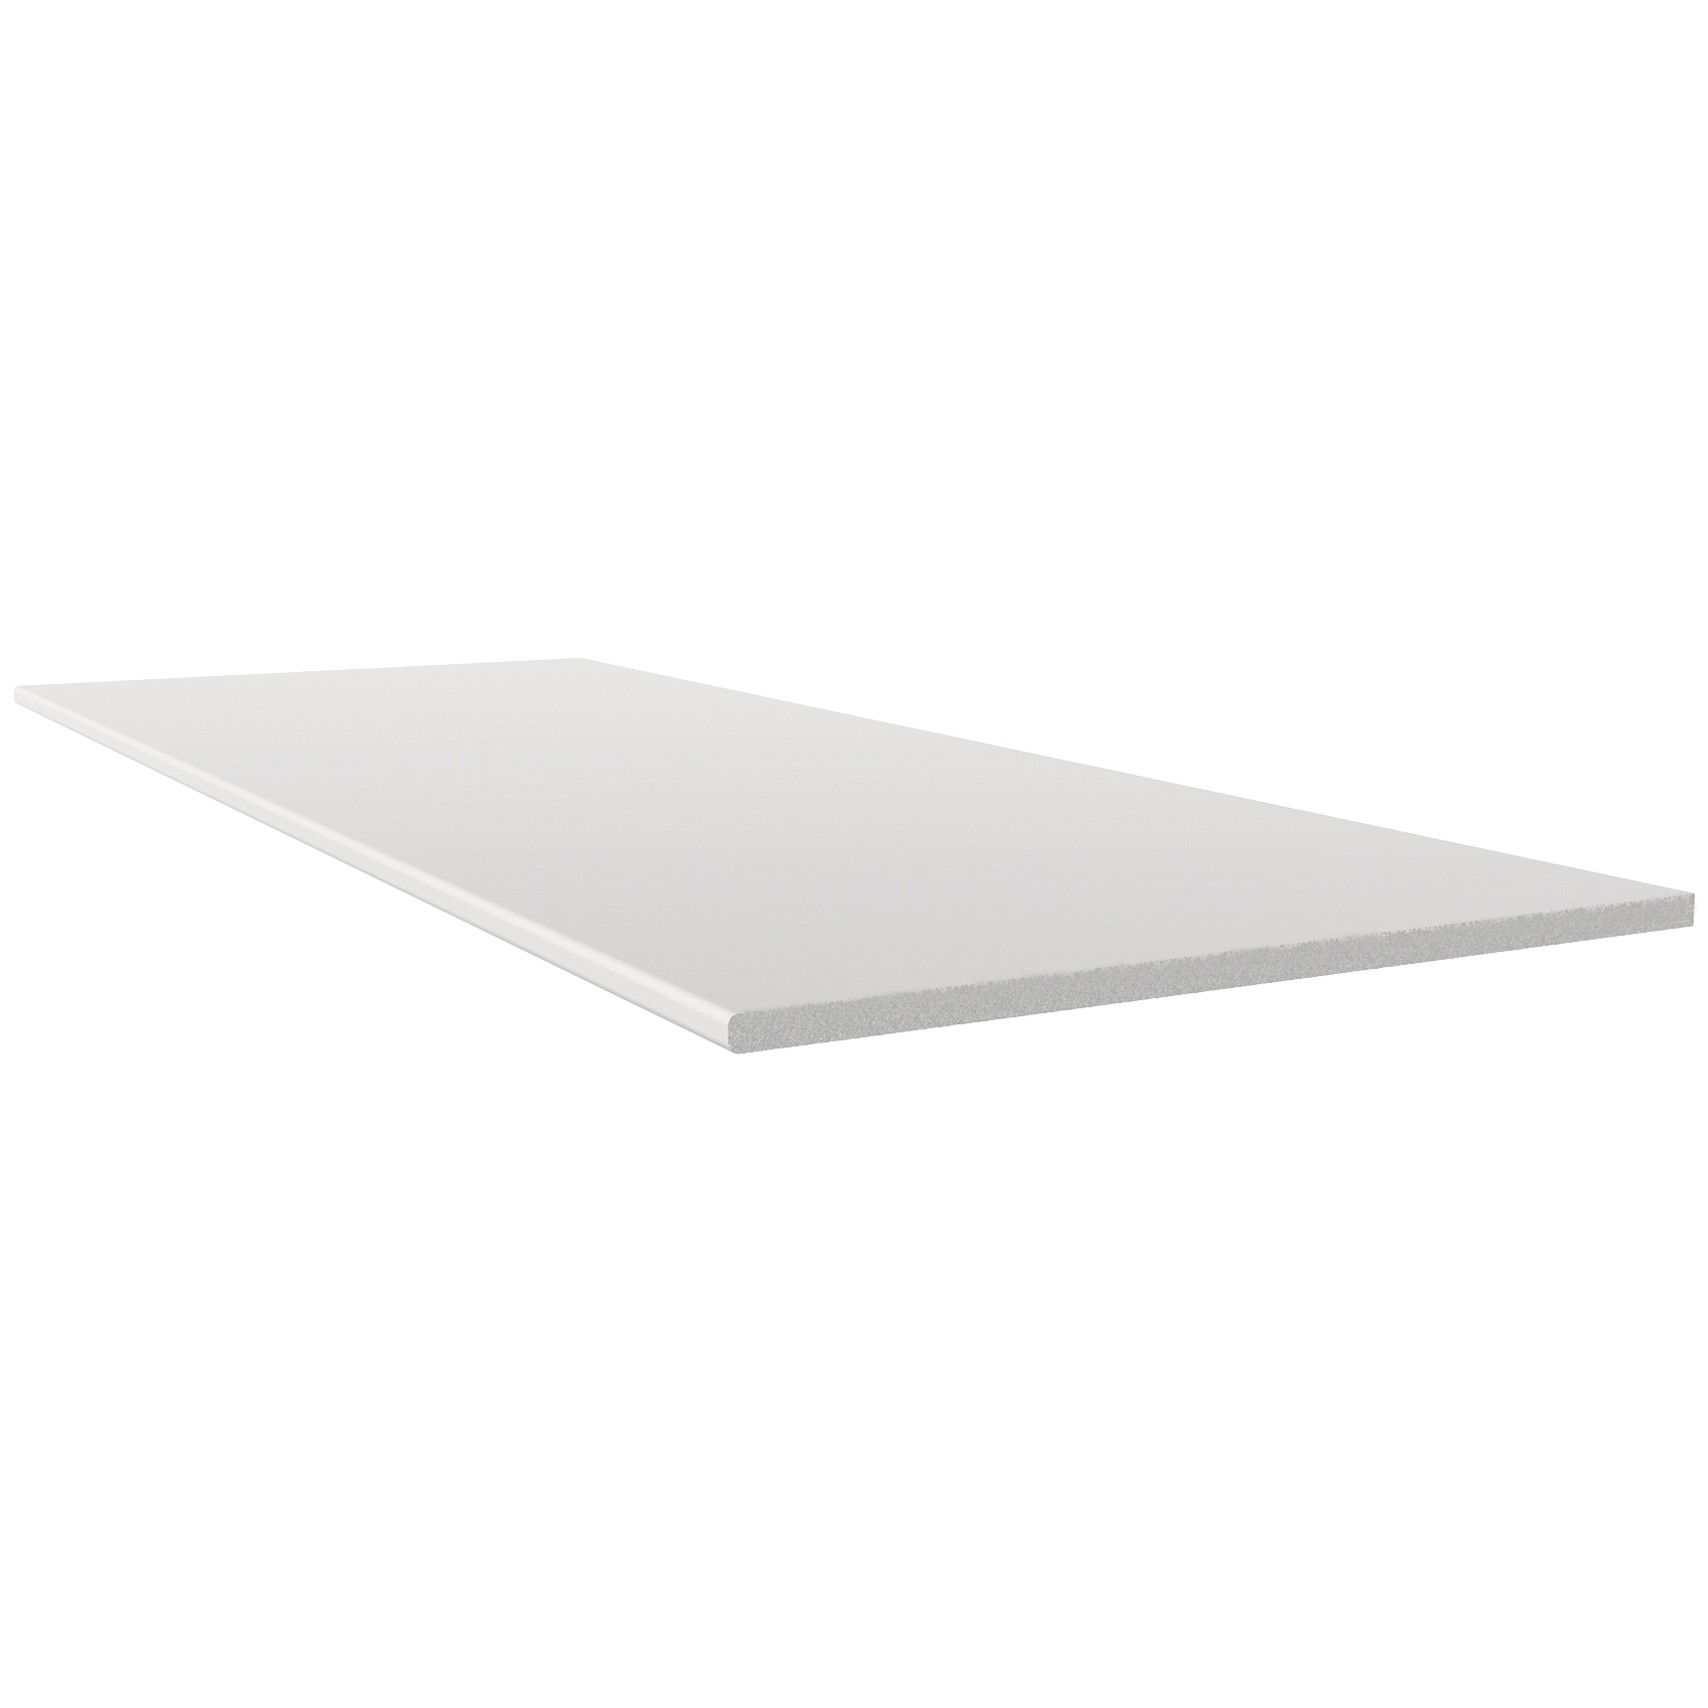 Freefoam 10mm Solid Soffit Board - White, 250mm, 5 metre